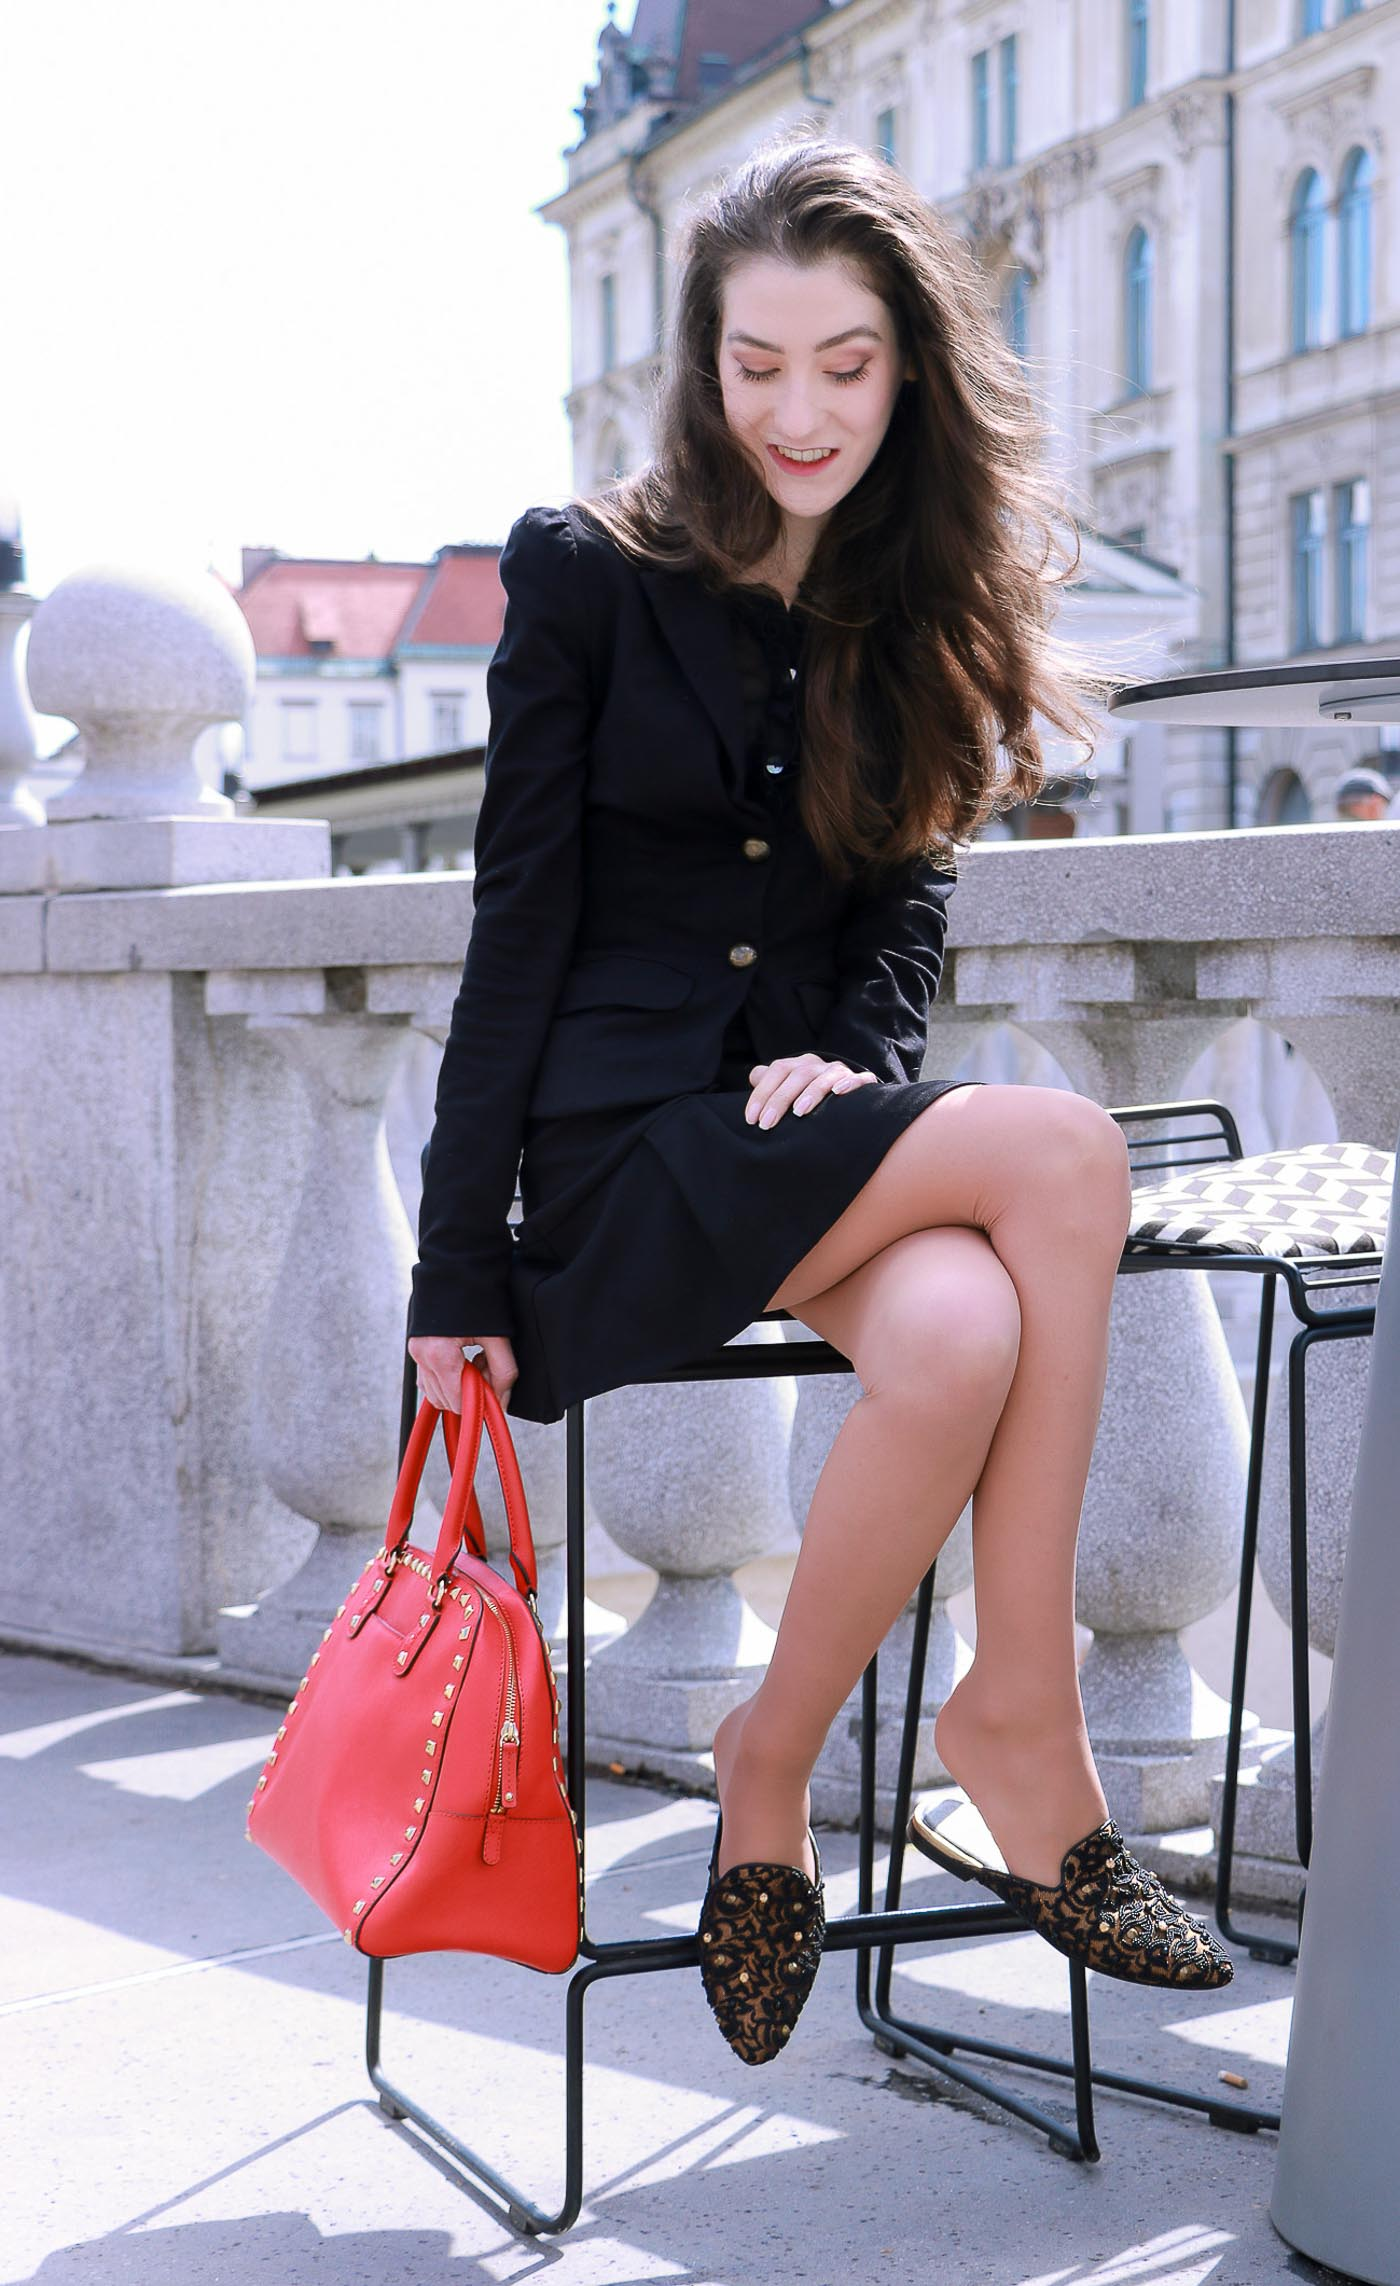 Fashion Blogger Veronika Lipar of Brunette from Wall Street wearing skirt suit to the brunch date with her girl friends this fall